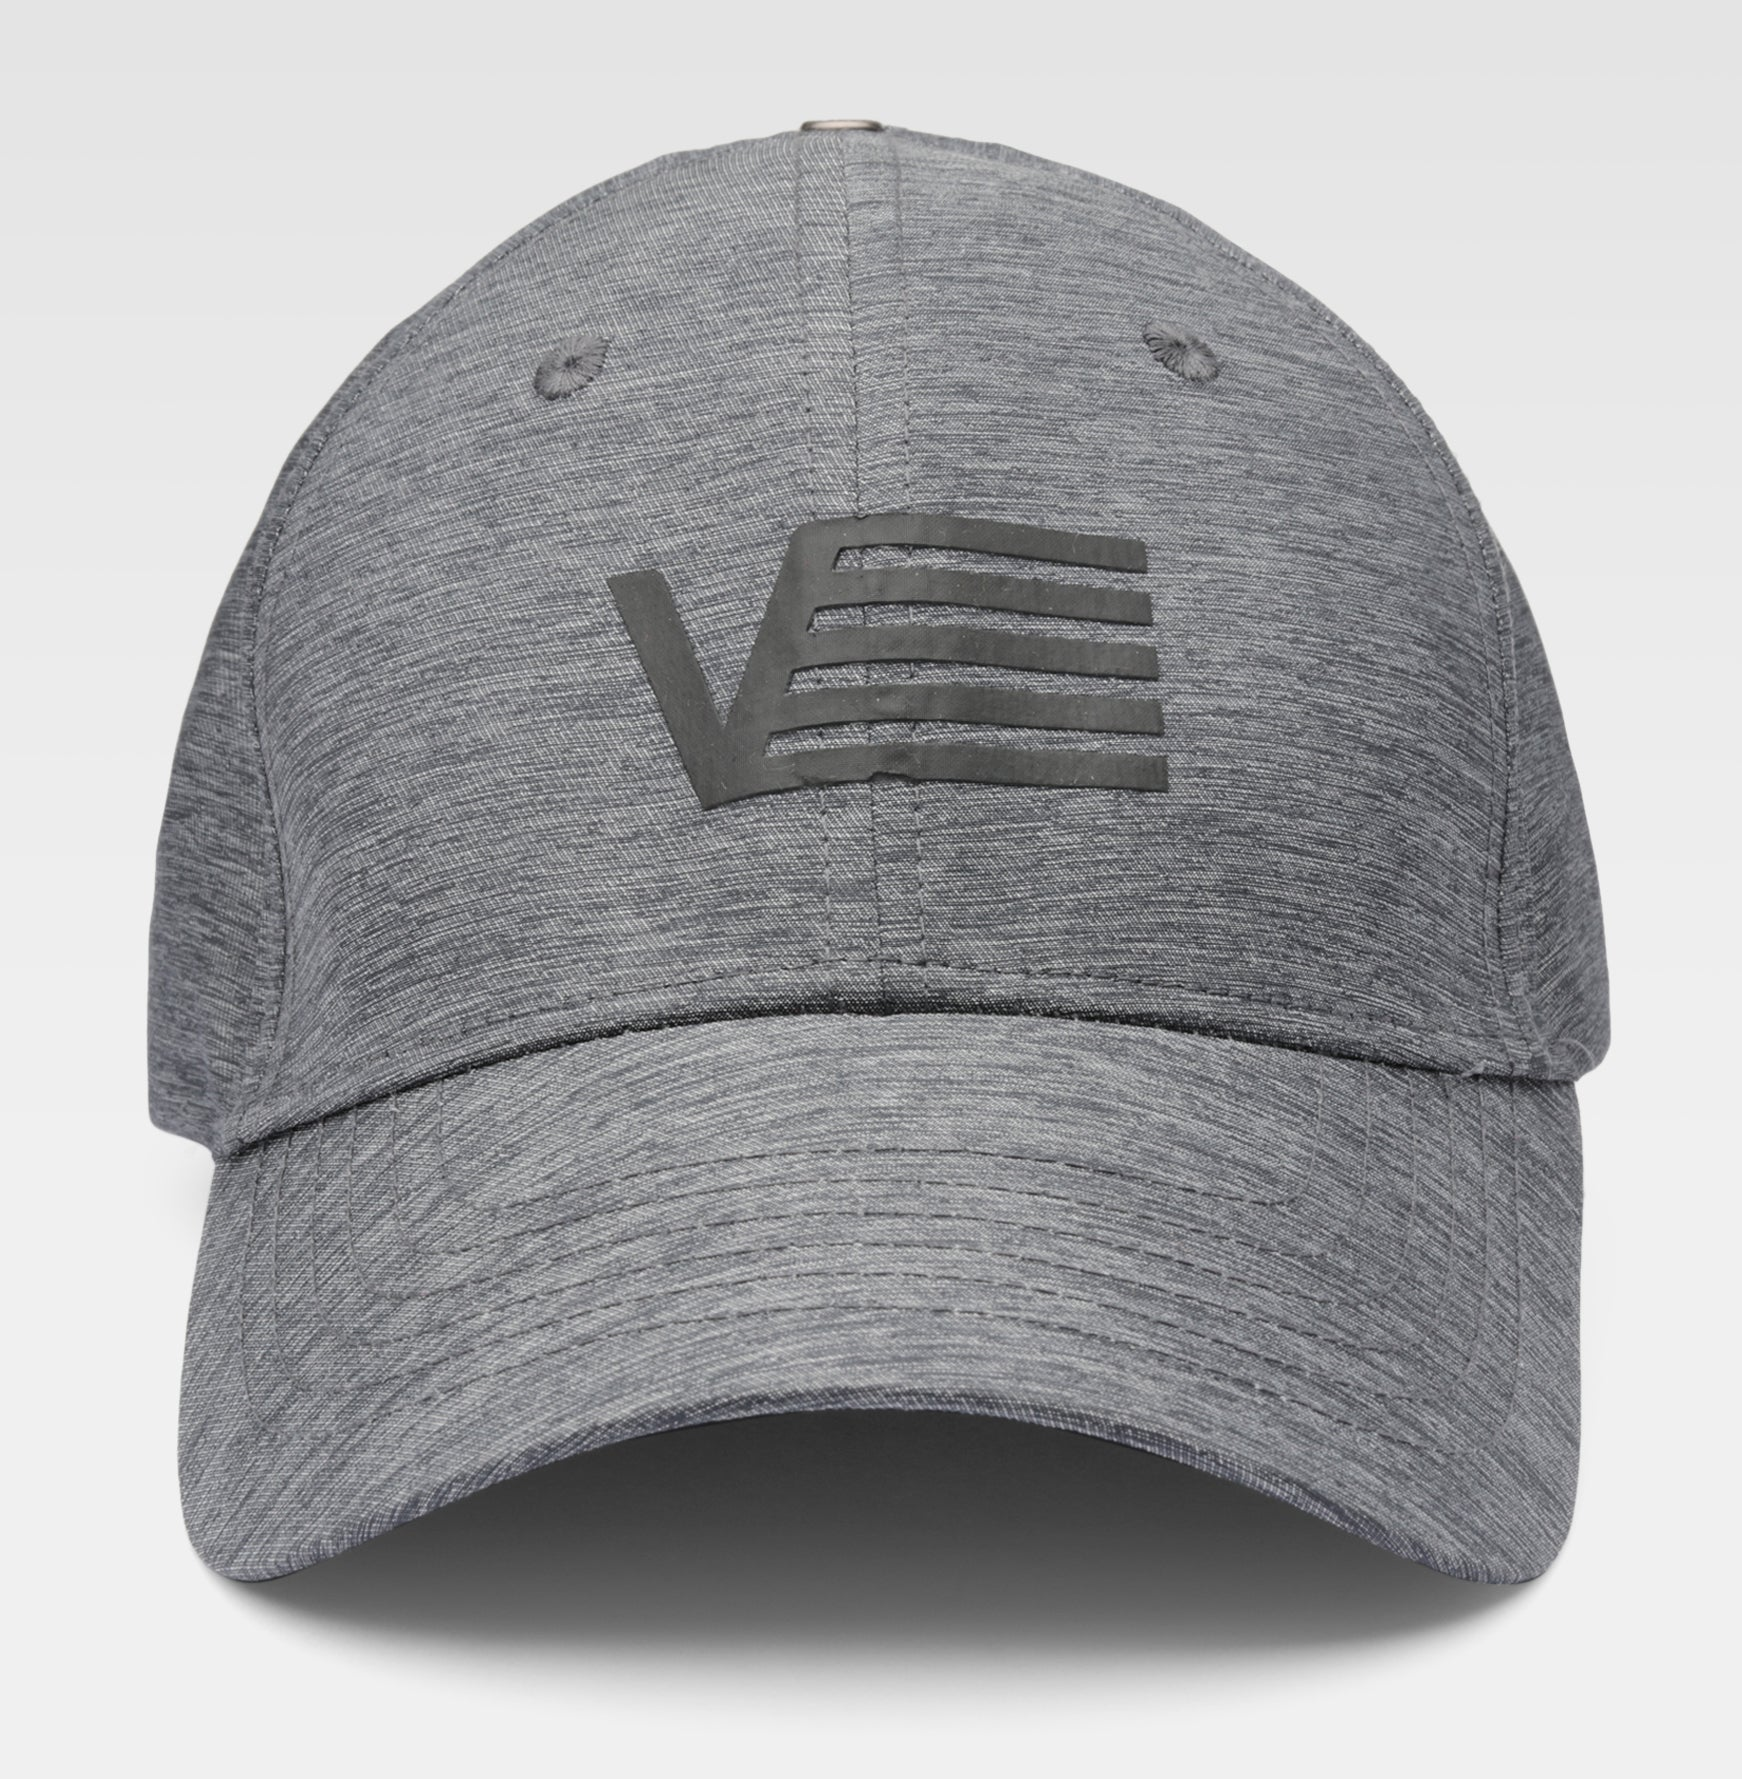 Gray cap with logo print